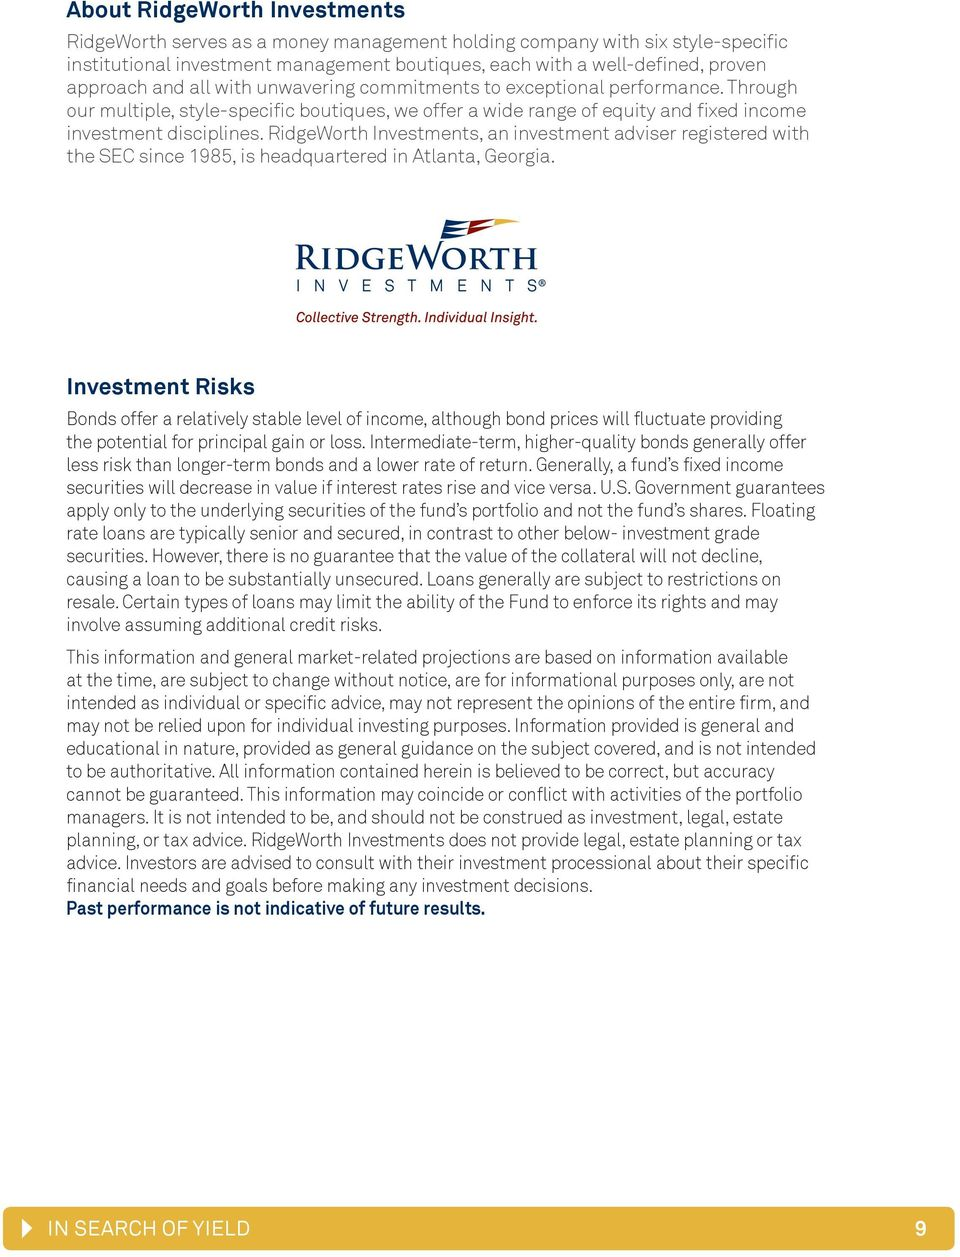 RidgeWorth Investments, an investment adviser registered with the SEC since 1985, is headquartered in Atlanta, Georgia.